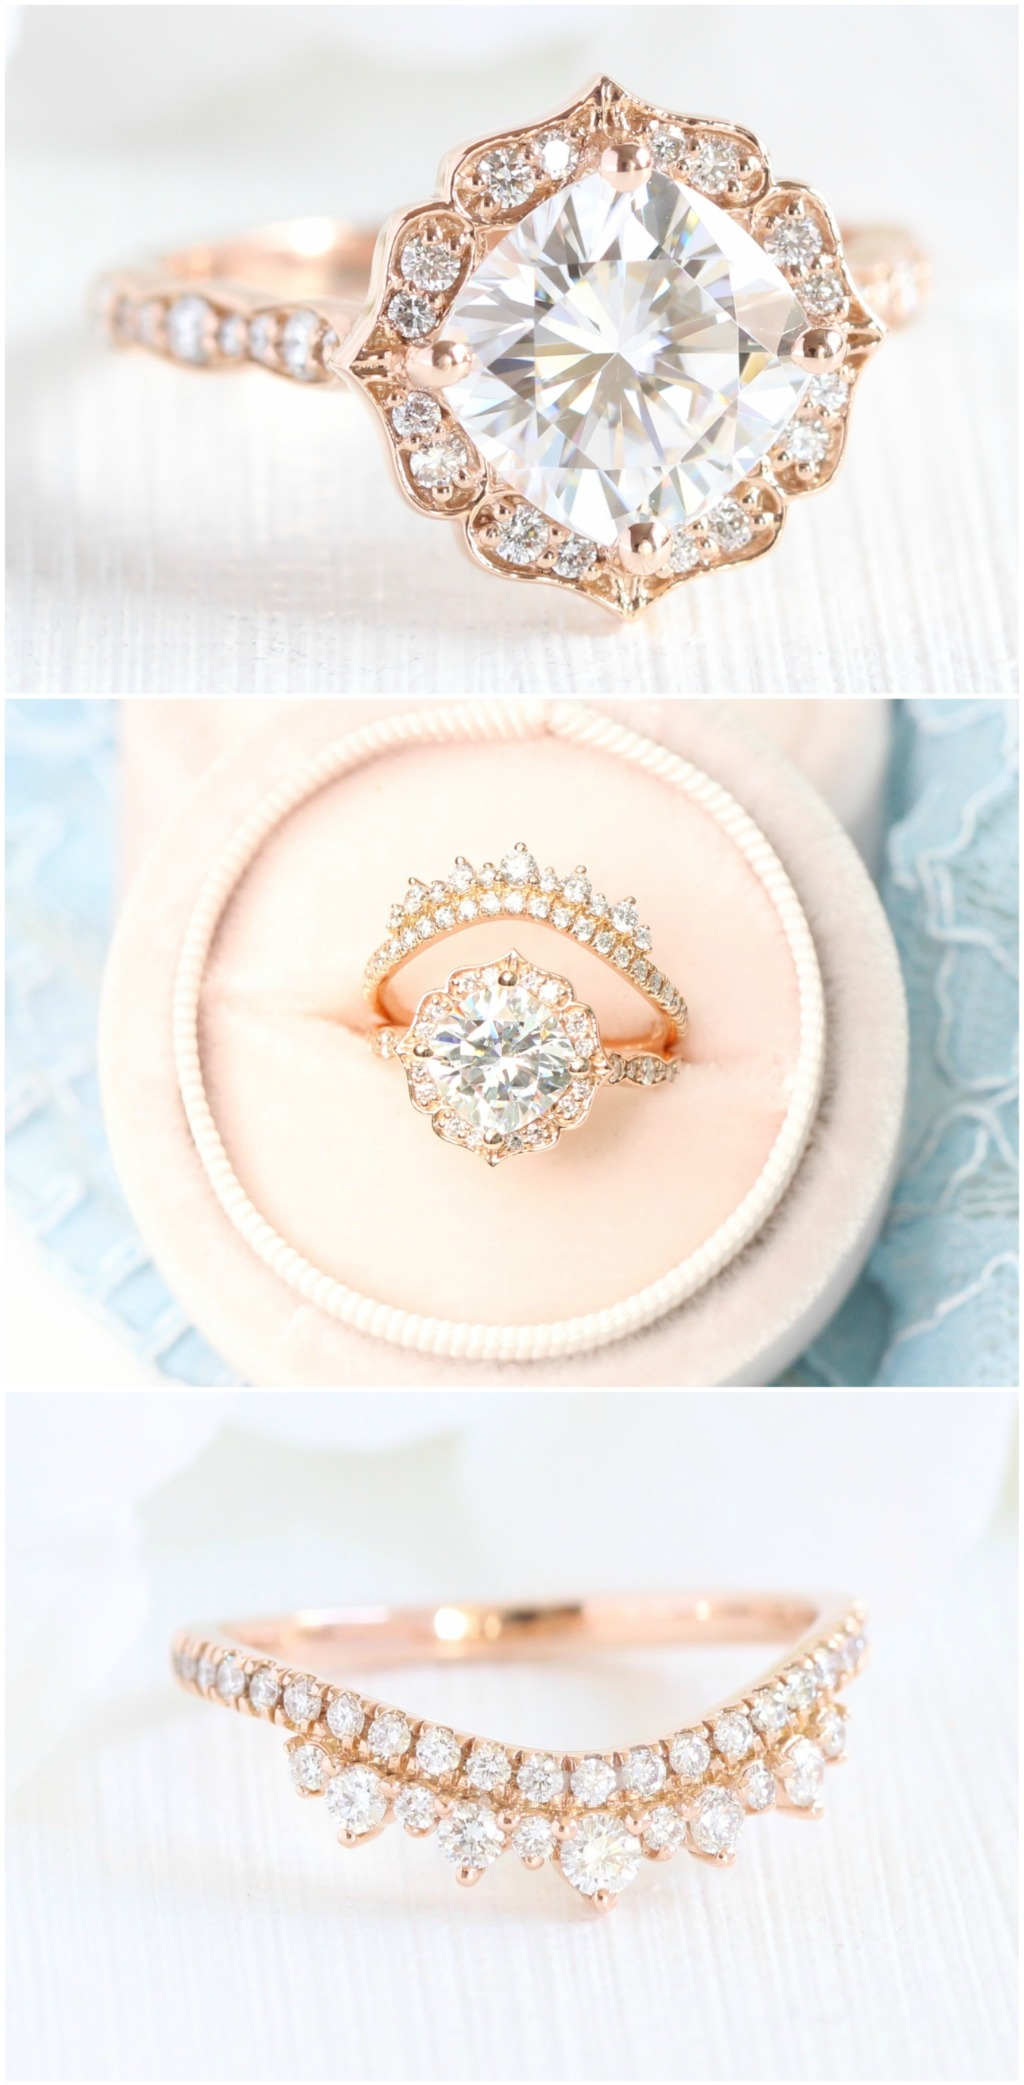 Breathtakingly gorgeous Cushion Cut Forever One Moissanite Engagement Ring in 14k rose gold Vintage Floral Ring setting pairs gorgeously